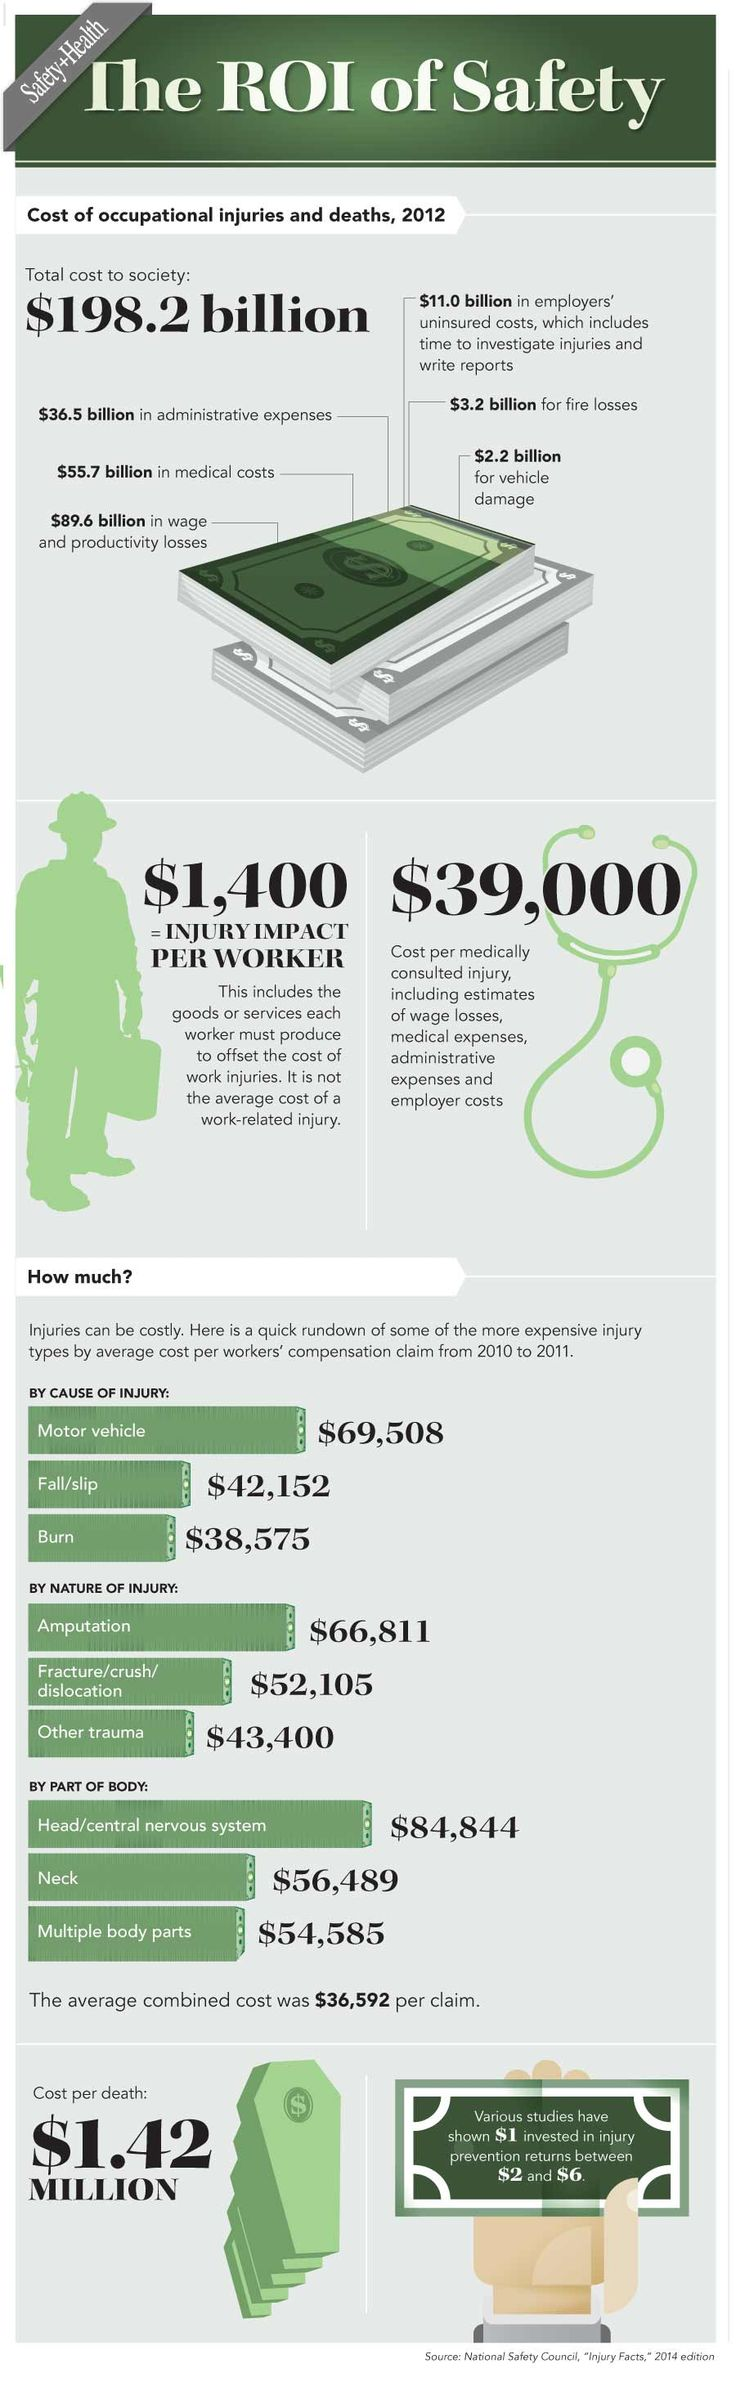 229 best occupational health and safety images on pinterest infographic the roi of safety compliance and safety blog safety trainingworkplace safetyenvironmental healthhealth xflitez Gallery